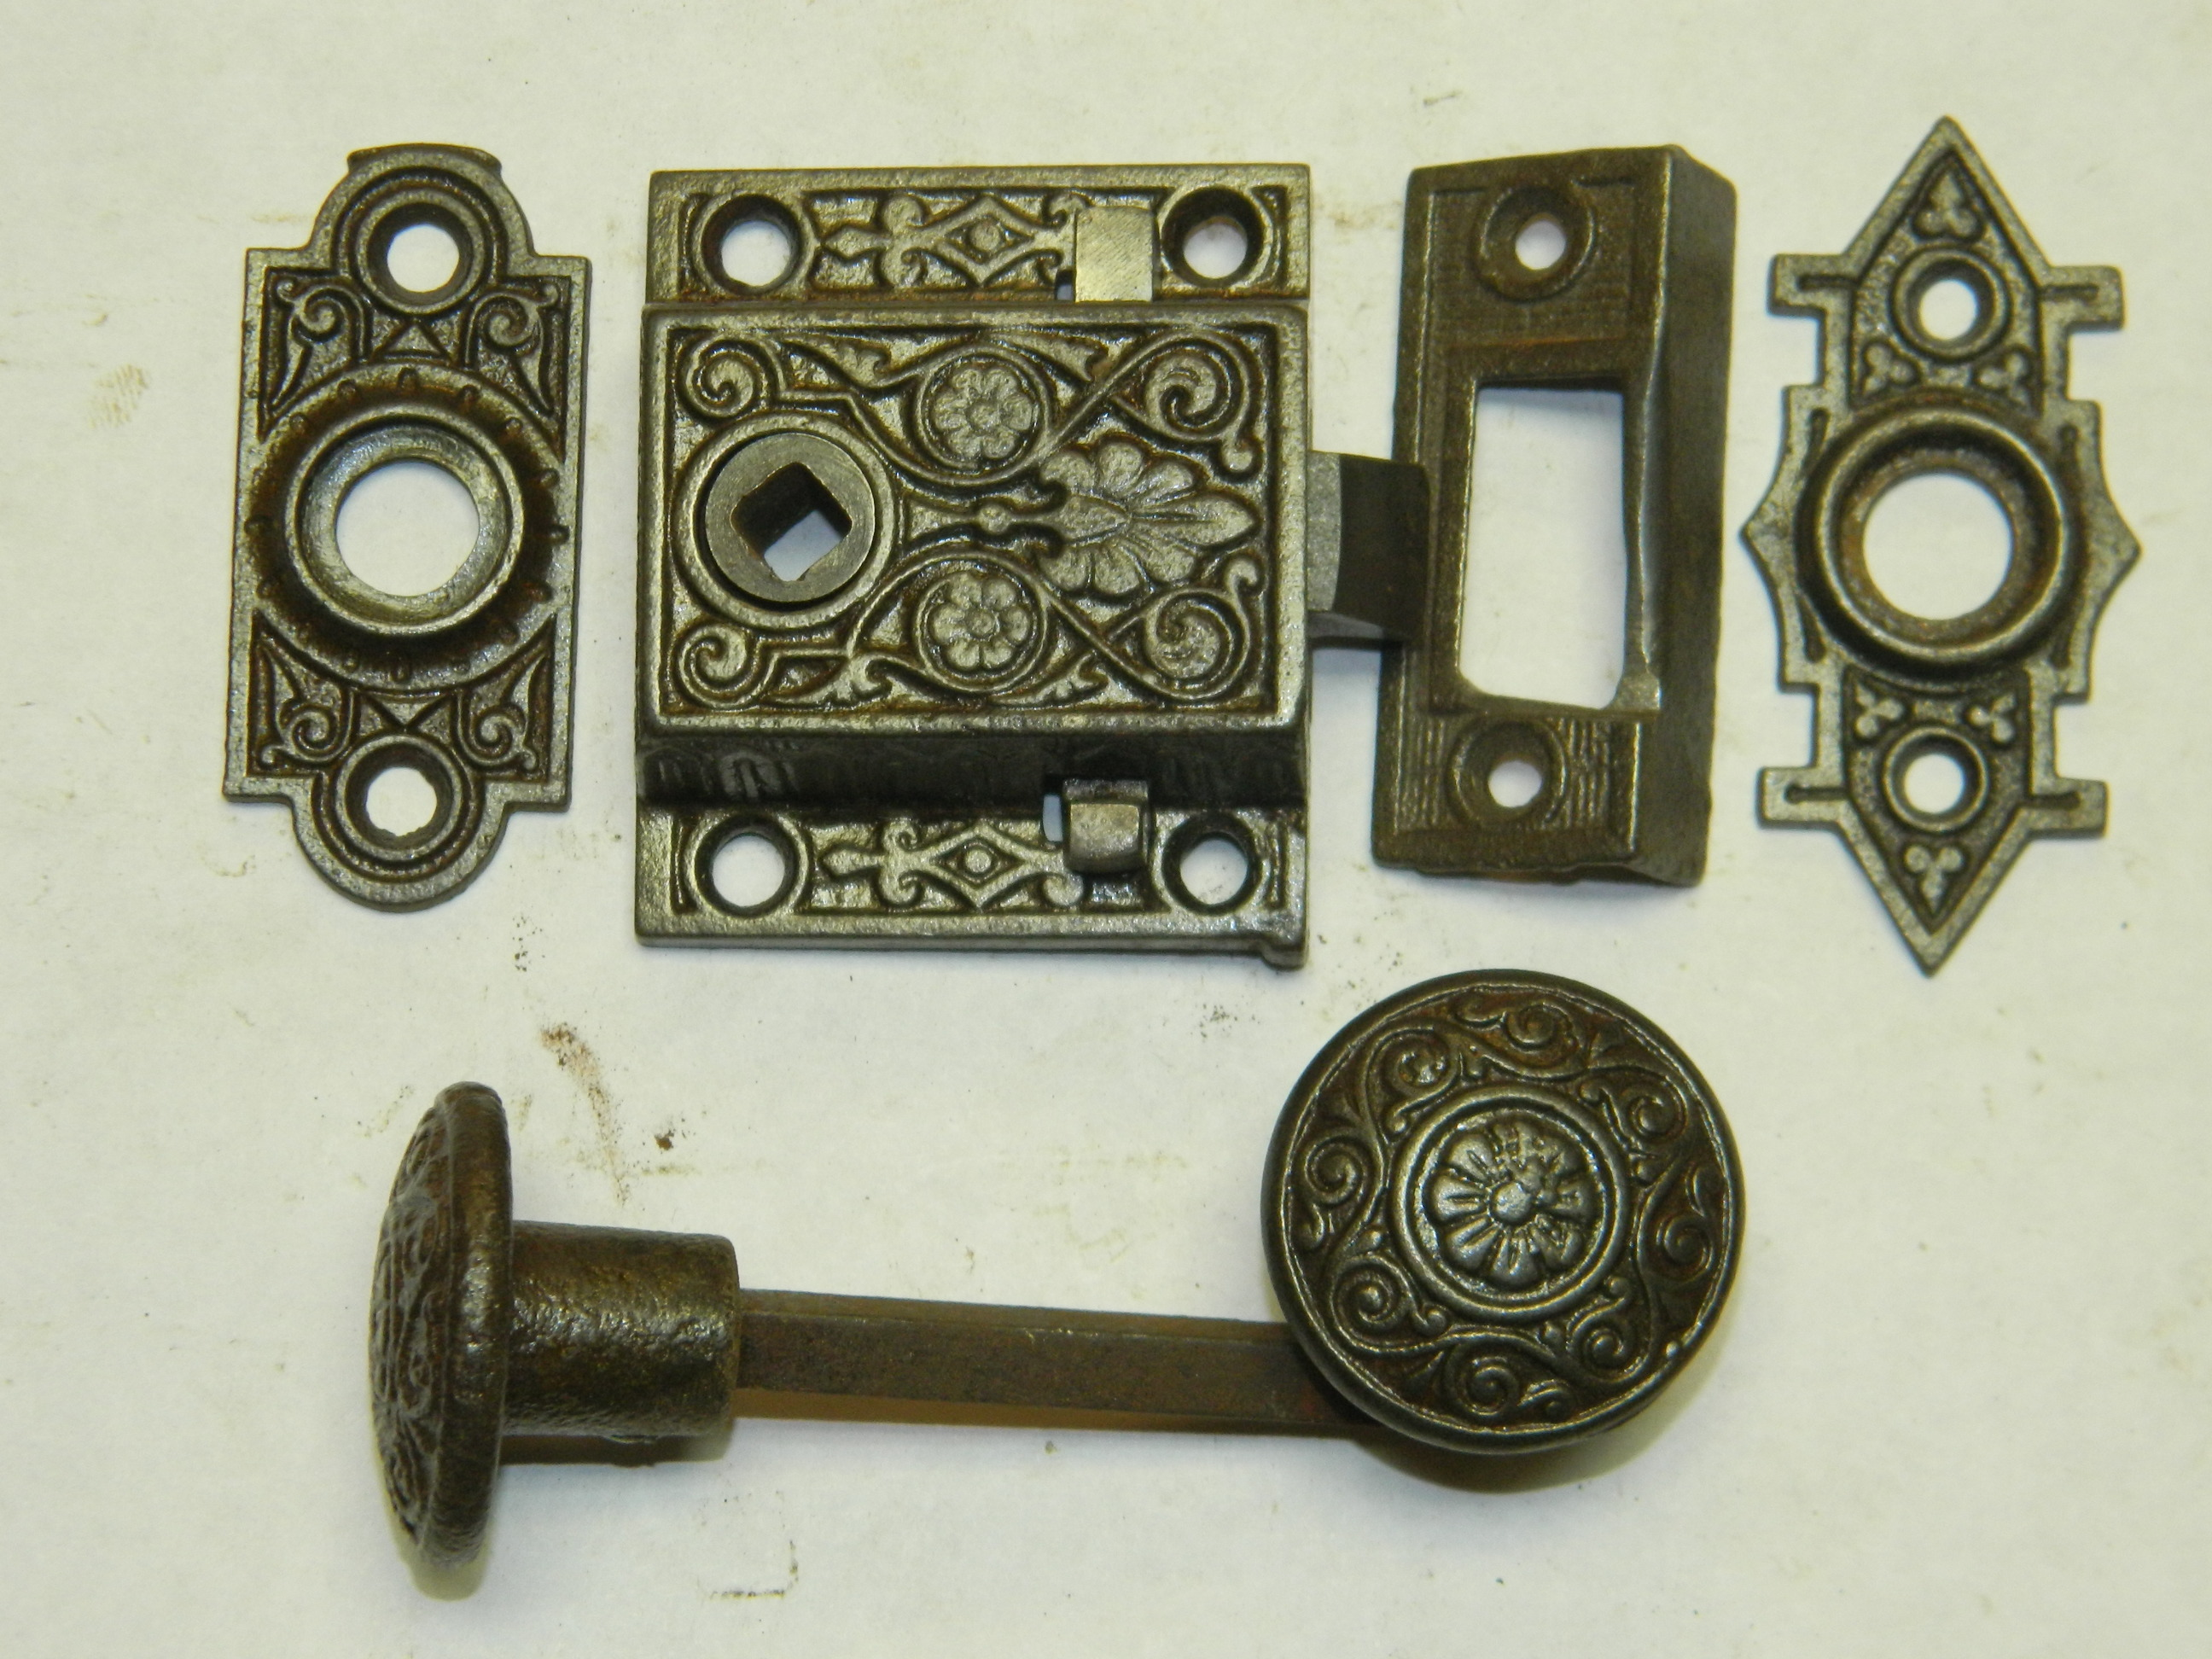 Antique Restoration Hardware Item #SCREEN DOOR LATCH 6